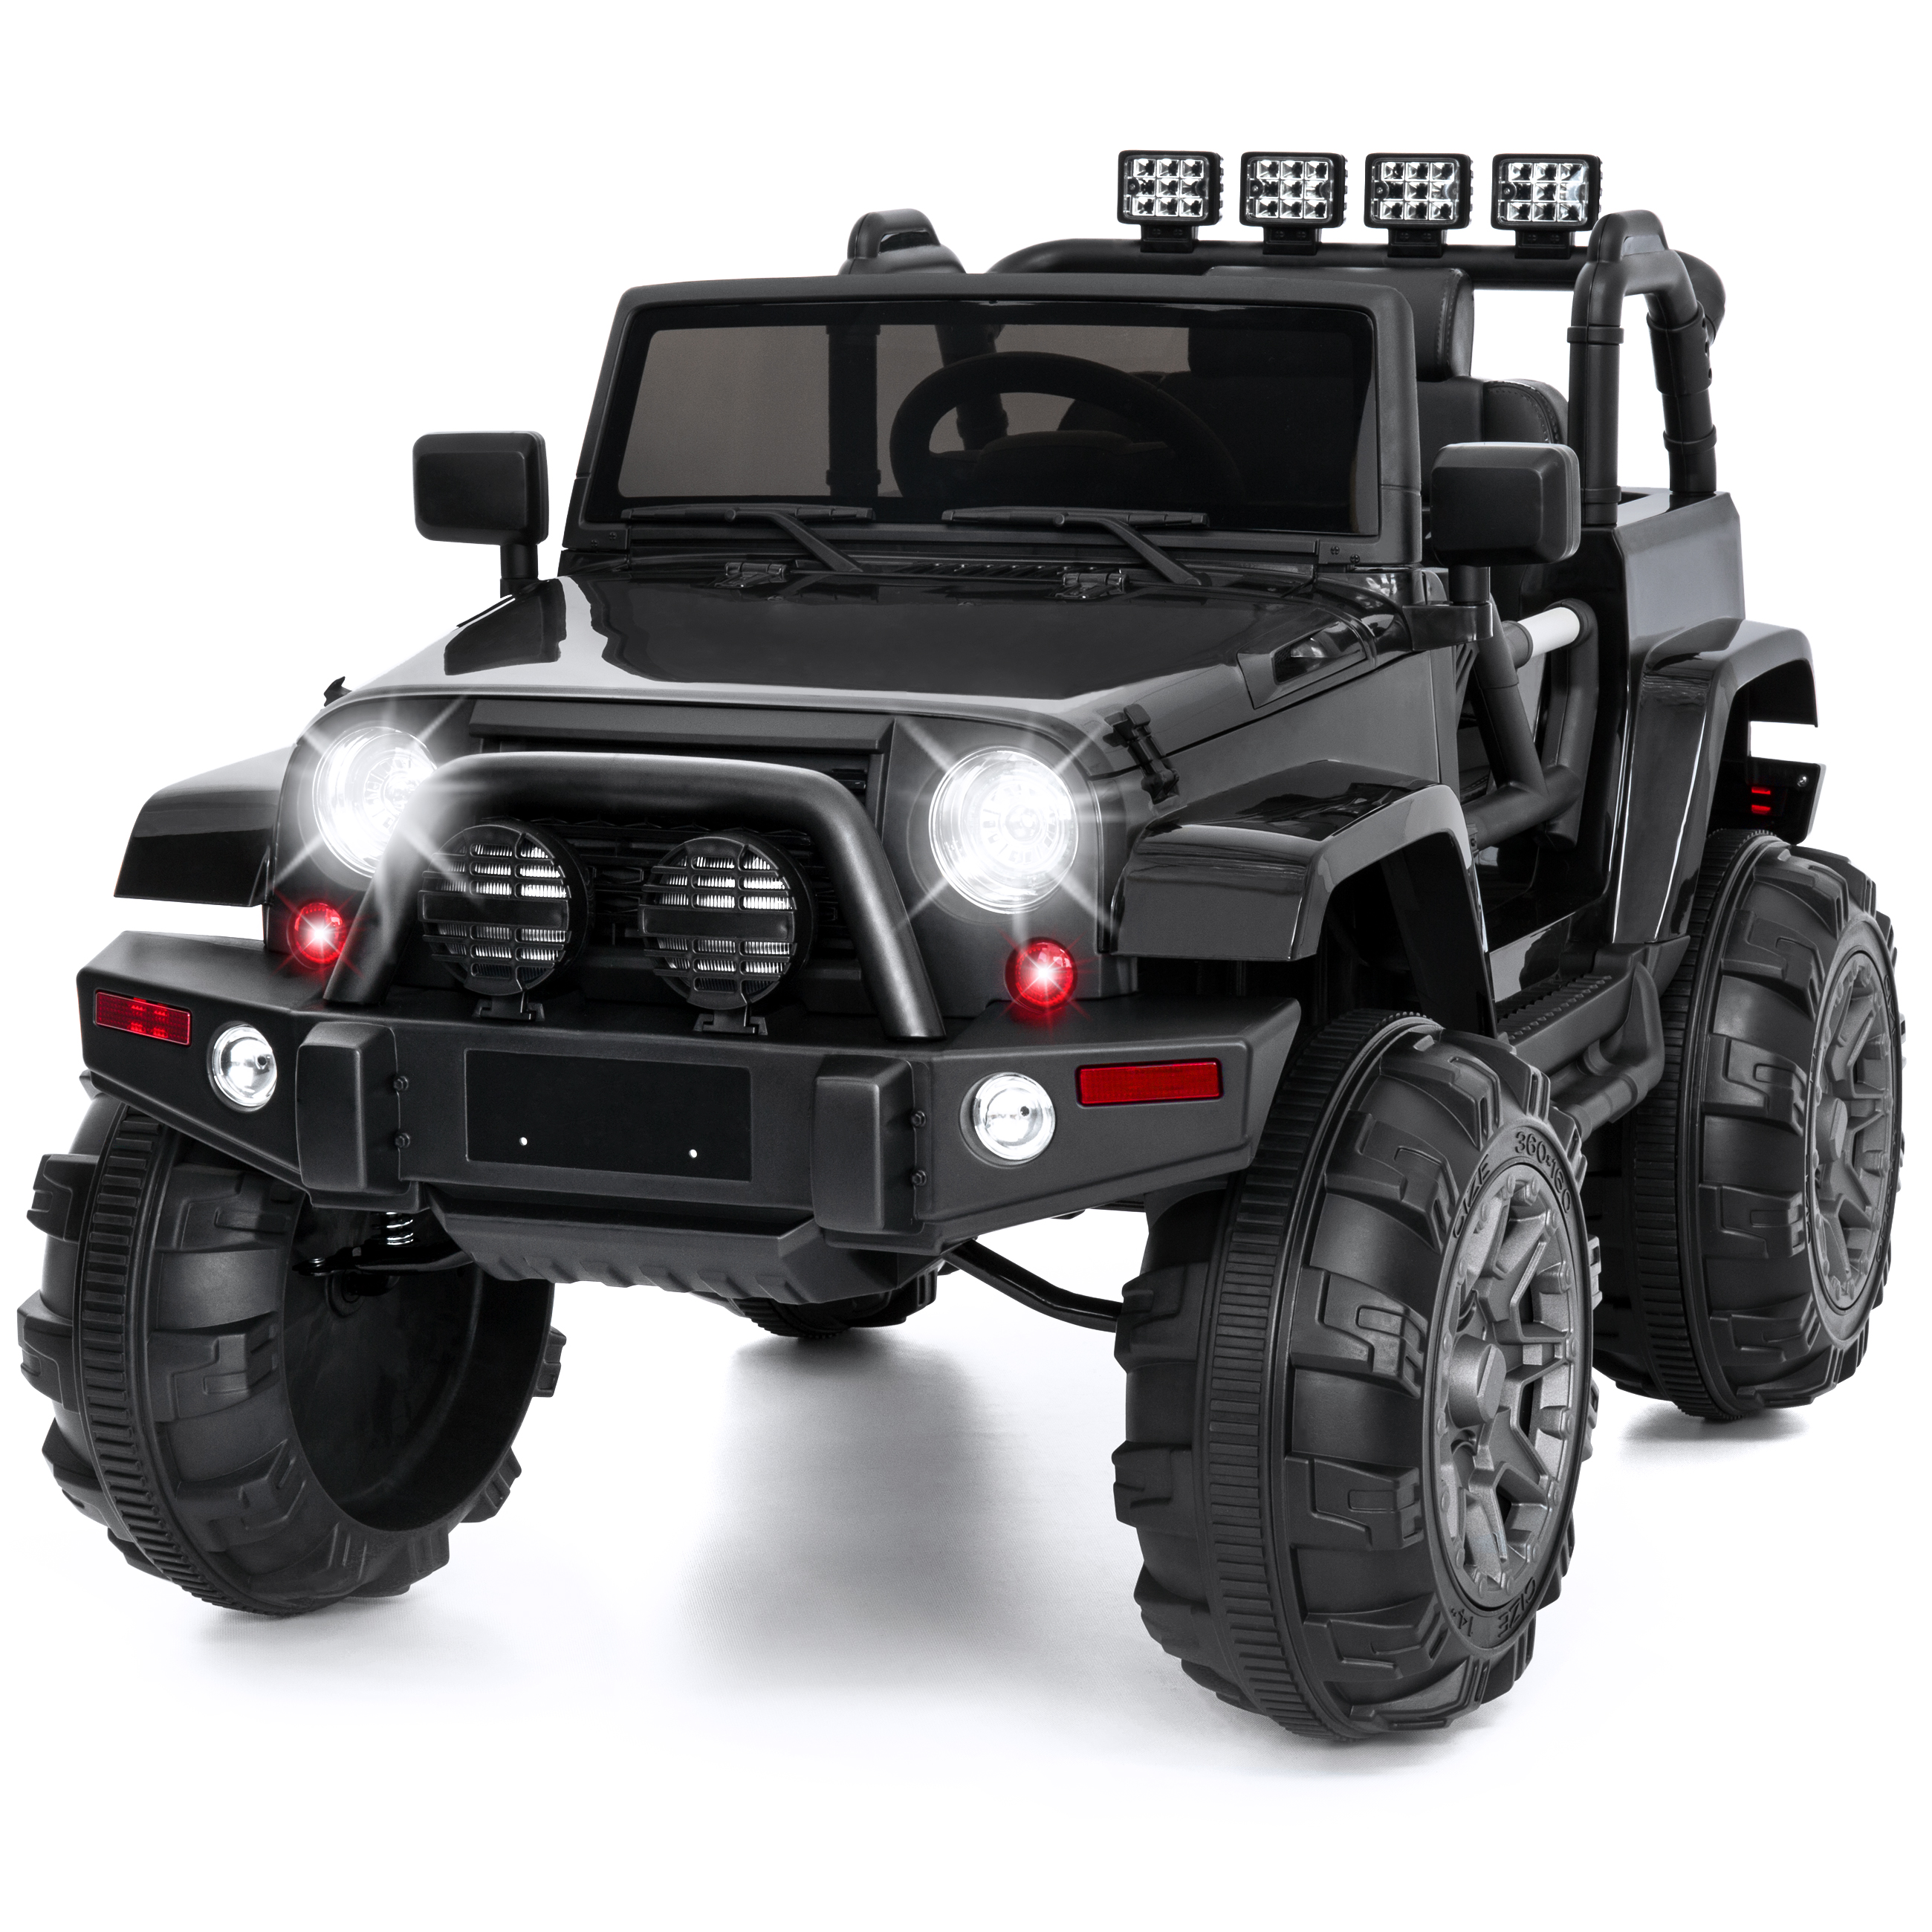 Best Choice Products 12V Ride On Car Truck w/ Remote Control, 3 Speeds, Spring Suspension, LED Light - Black